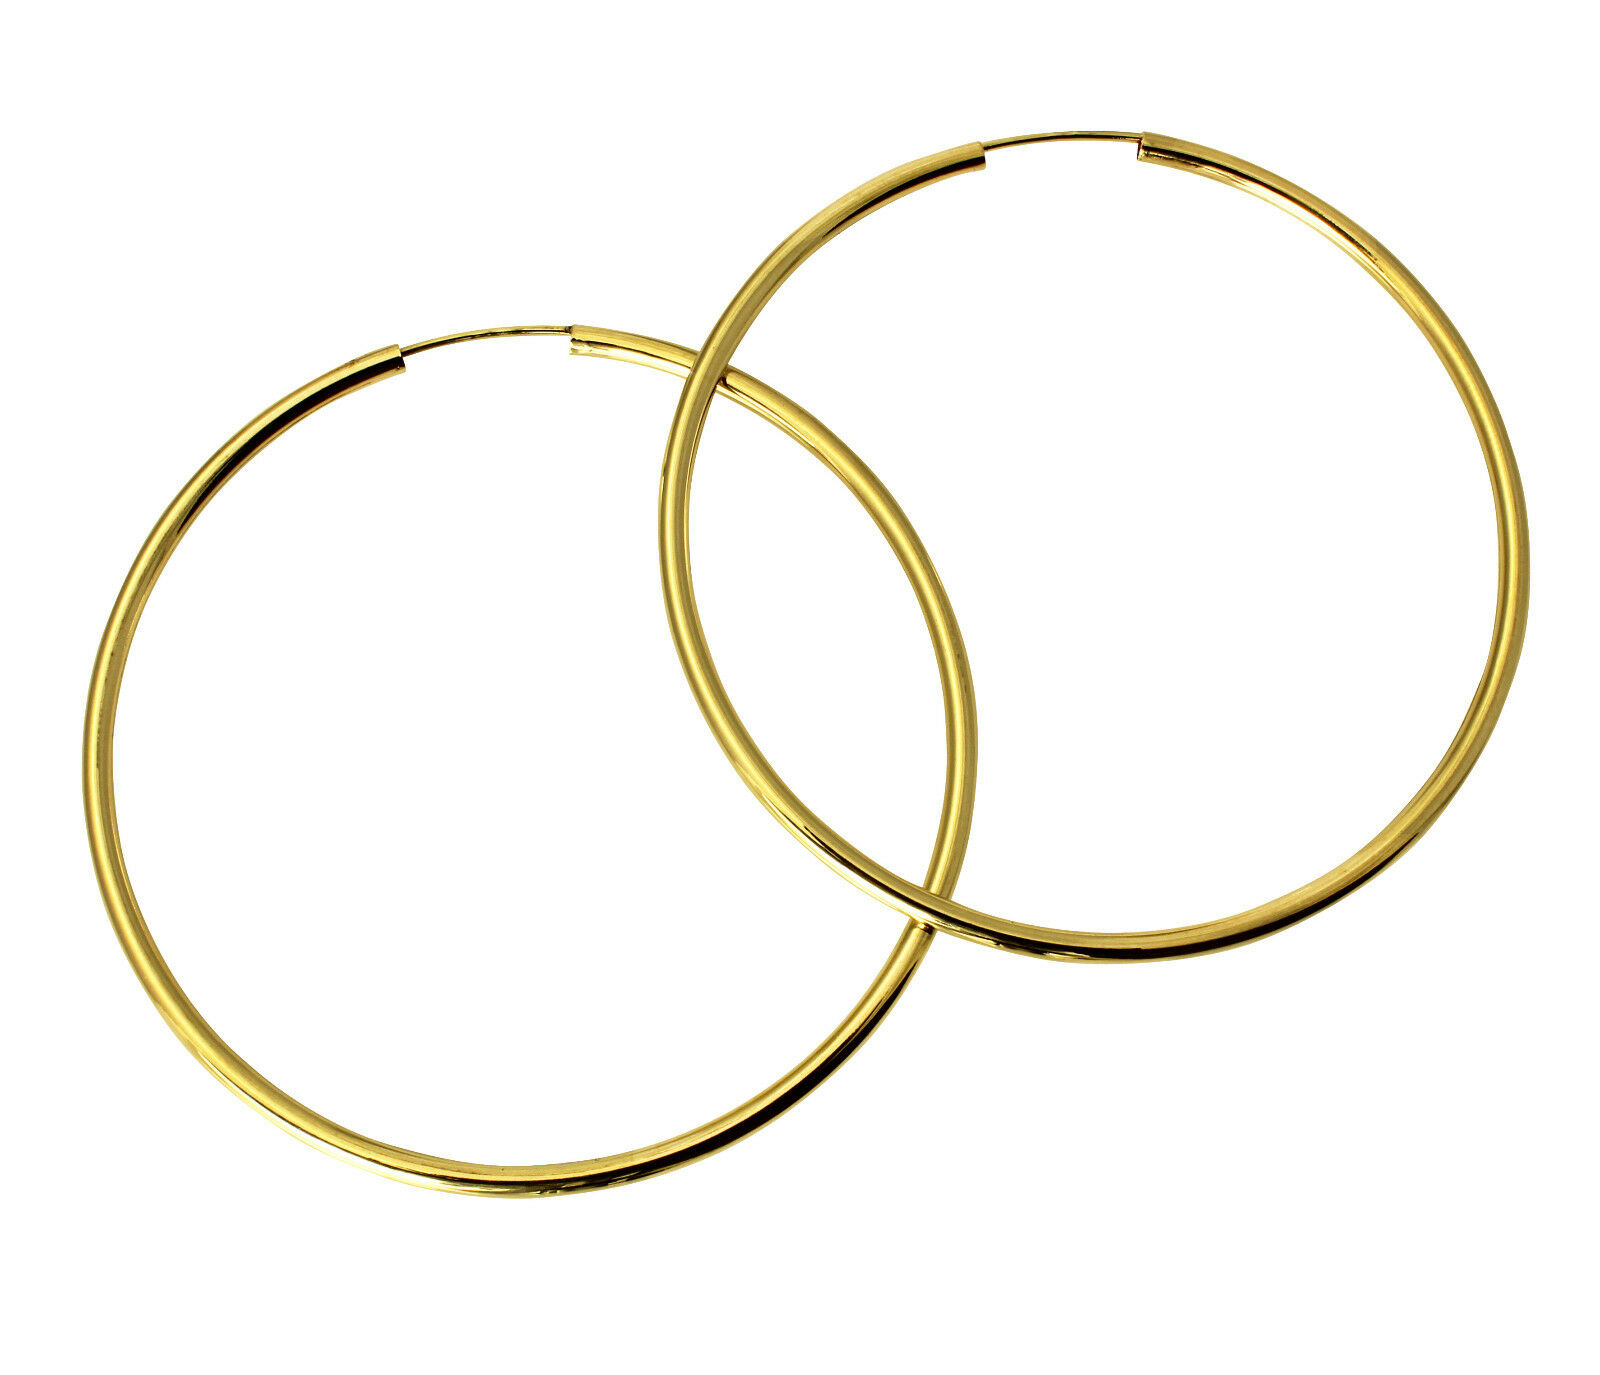 hoop earrings meaning 14k yellow gold 2mm thickness high polished large endless 5299